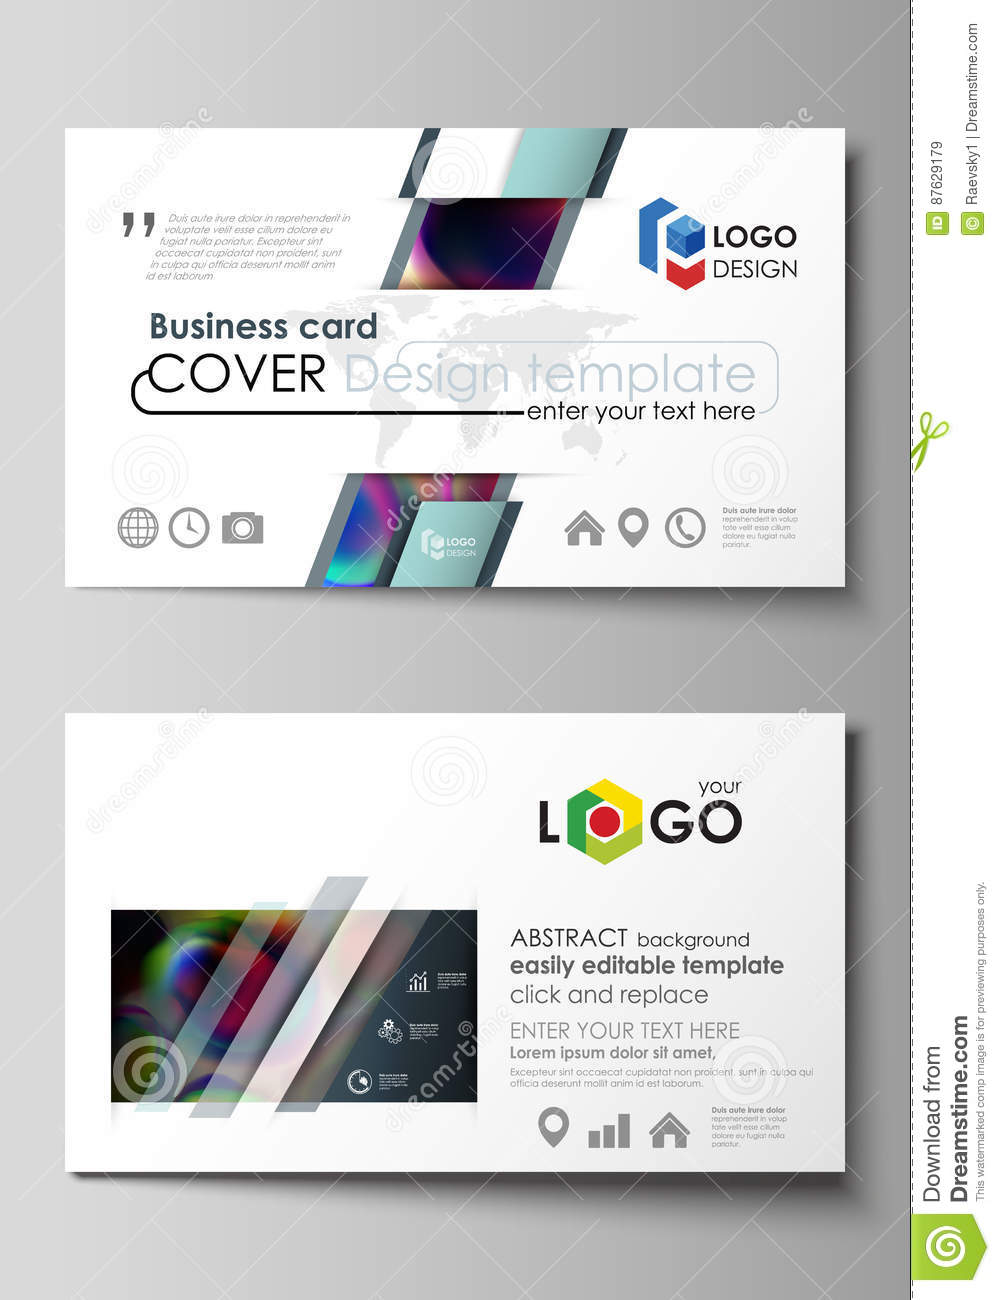 Business card templates easy editable layout flat style template business card templates easy editable layout flat style template vector illustration colorful wajeb Choice Image